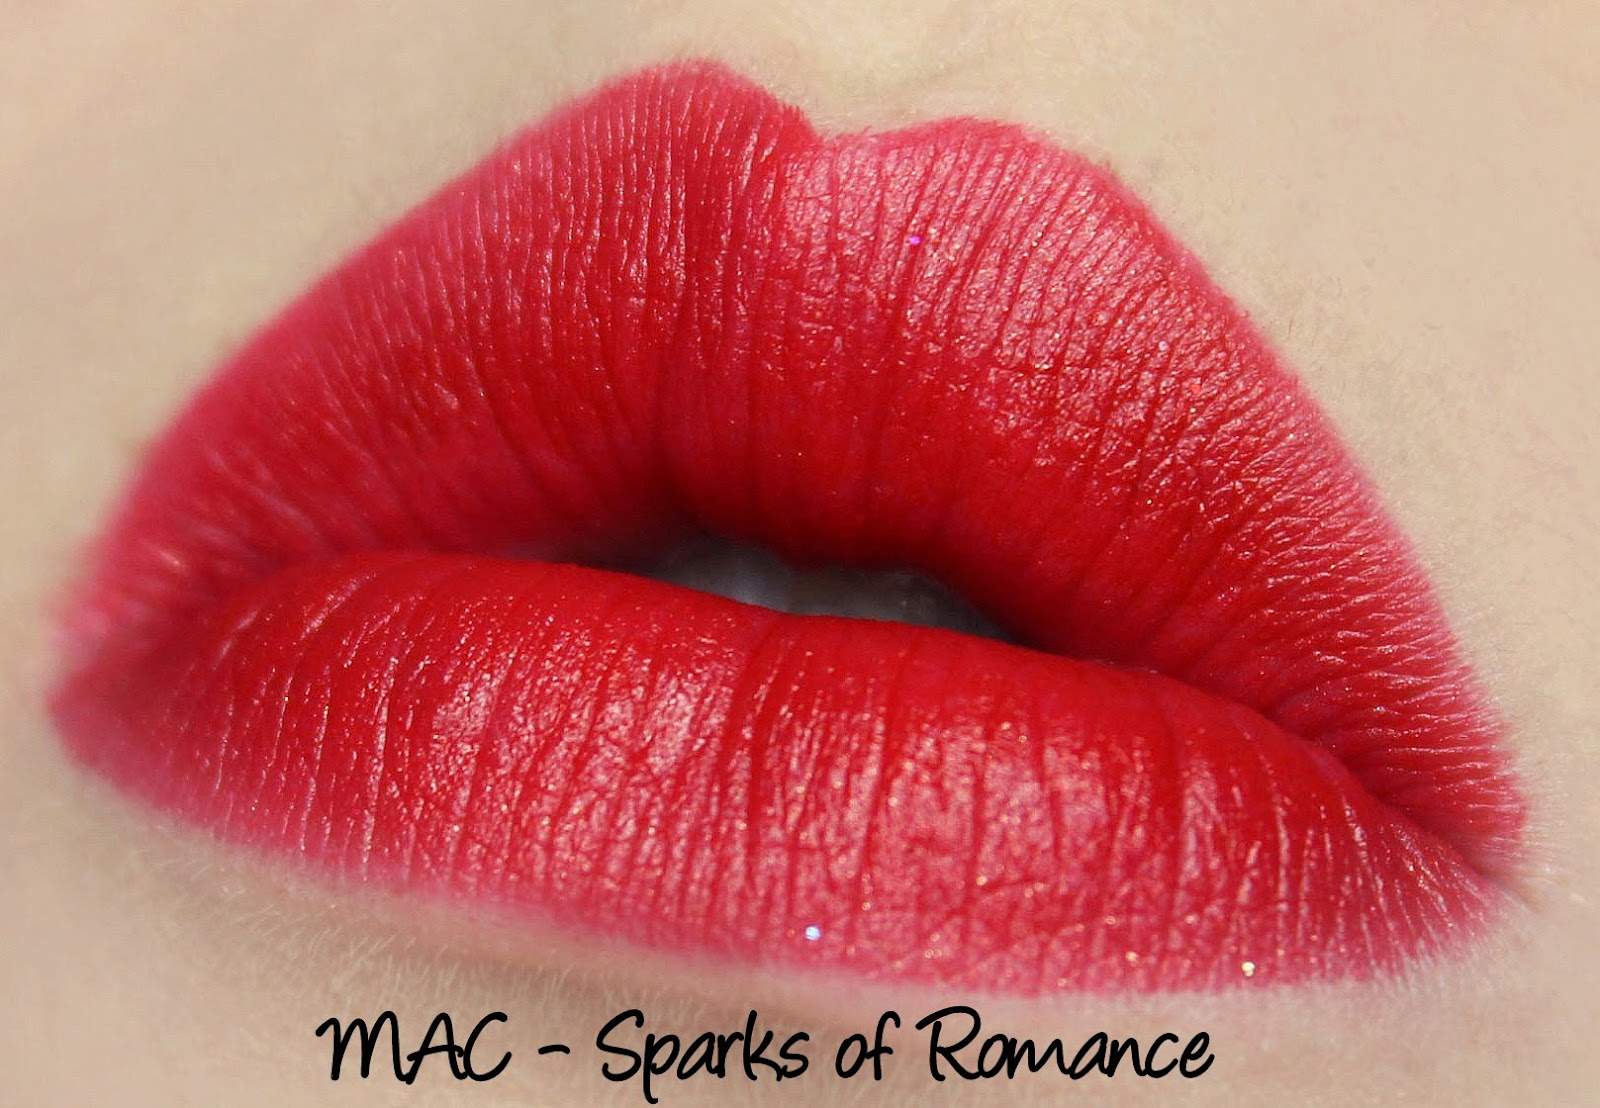 MAC Heirloom Mix Lipstick - Sparks of Romance Swatches & Review